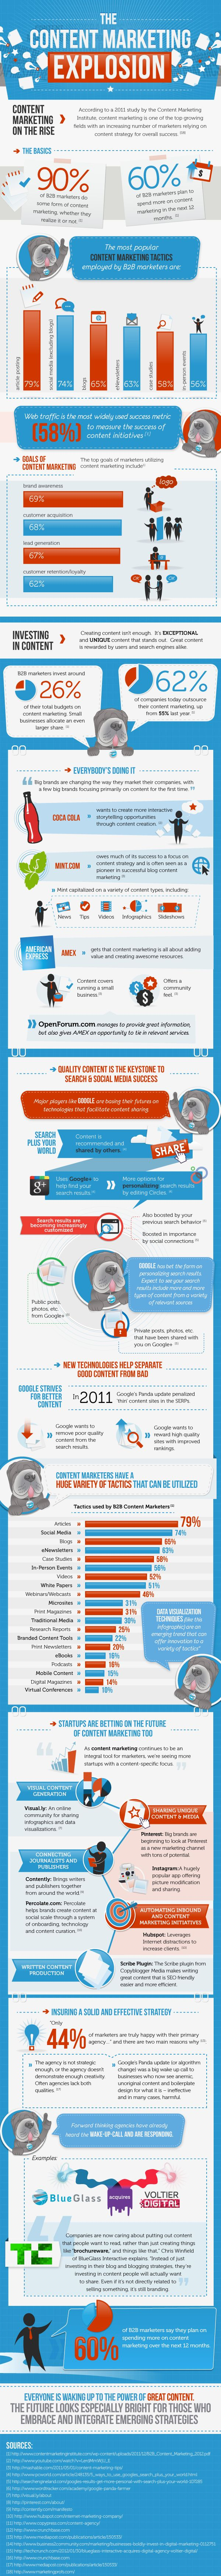 Is Content Marketing the Hot New Trend? – Infographic